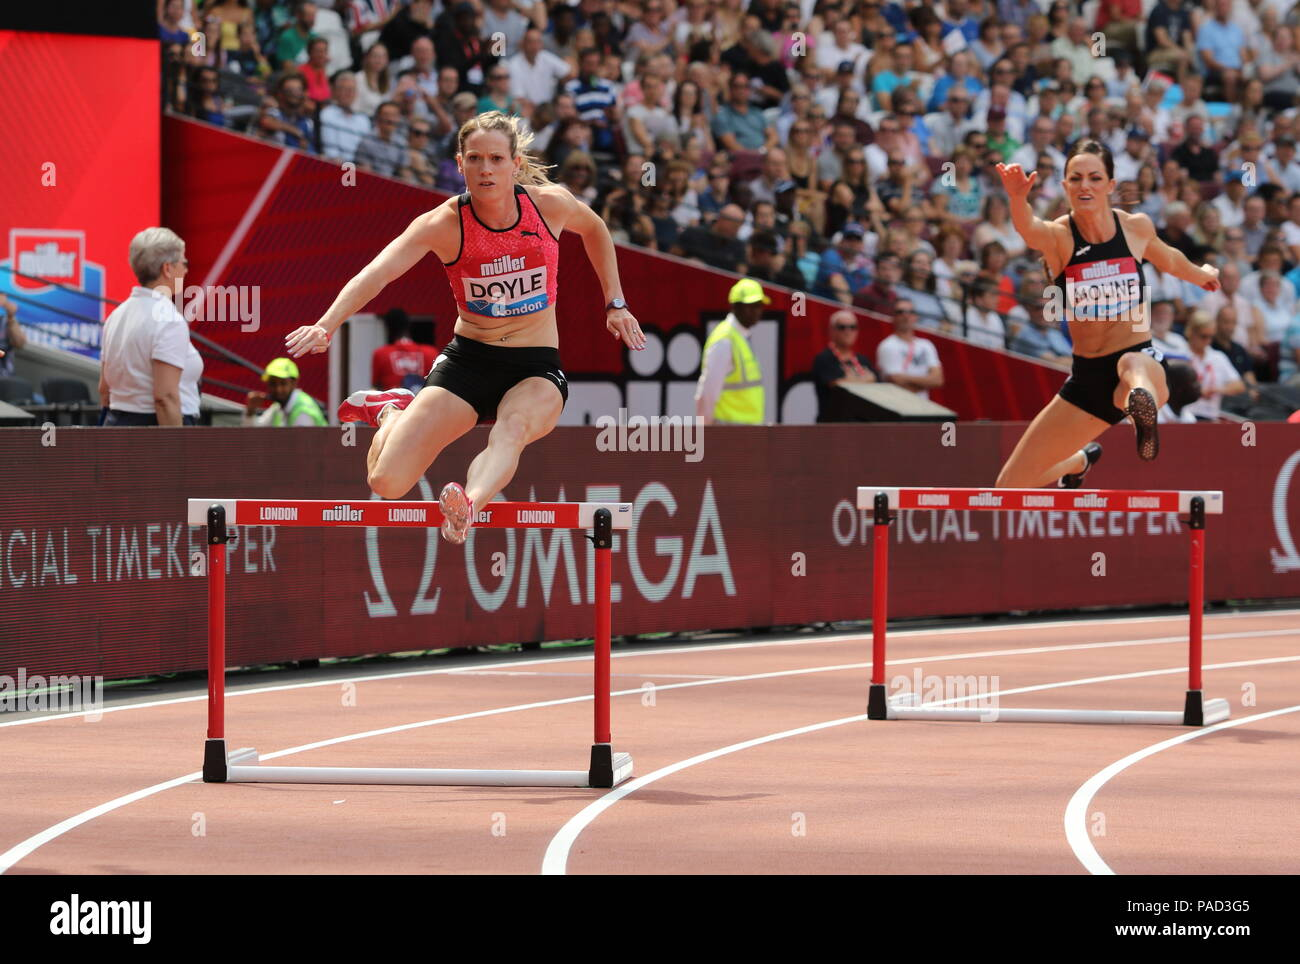 London, UK. 21st July, 2018. Eilidh DOYLE (GBR) competing in the Women's 400m Hurdles at the IAAF Diamond League, Muller Anniversary Games, Queen Elizabeth Olympic, LONDON, UK 21 July 2018 Credit: Grant Burton/Alamy Live News - Stock Image